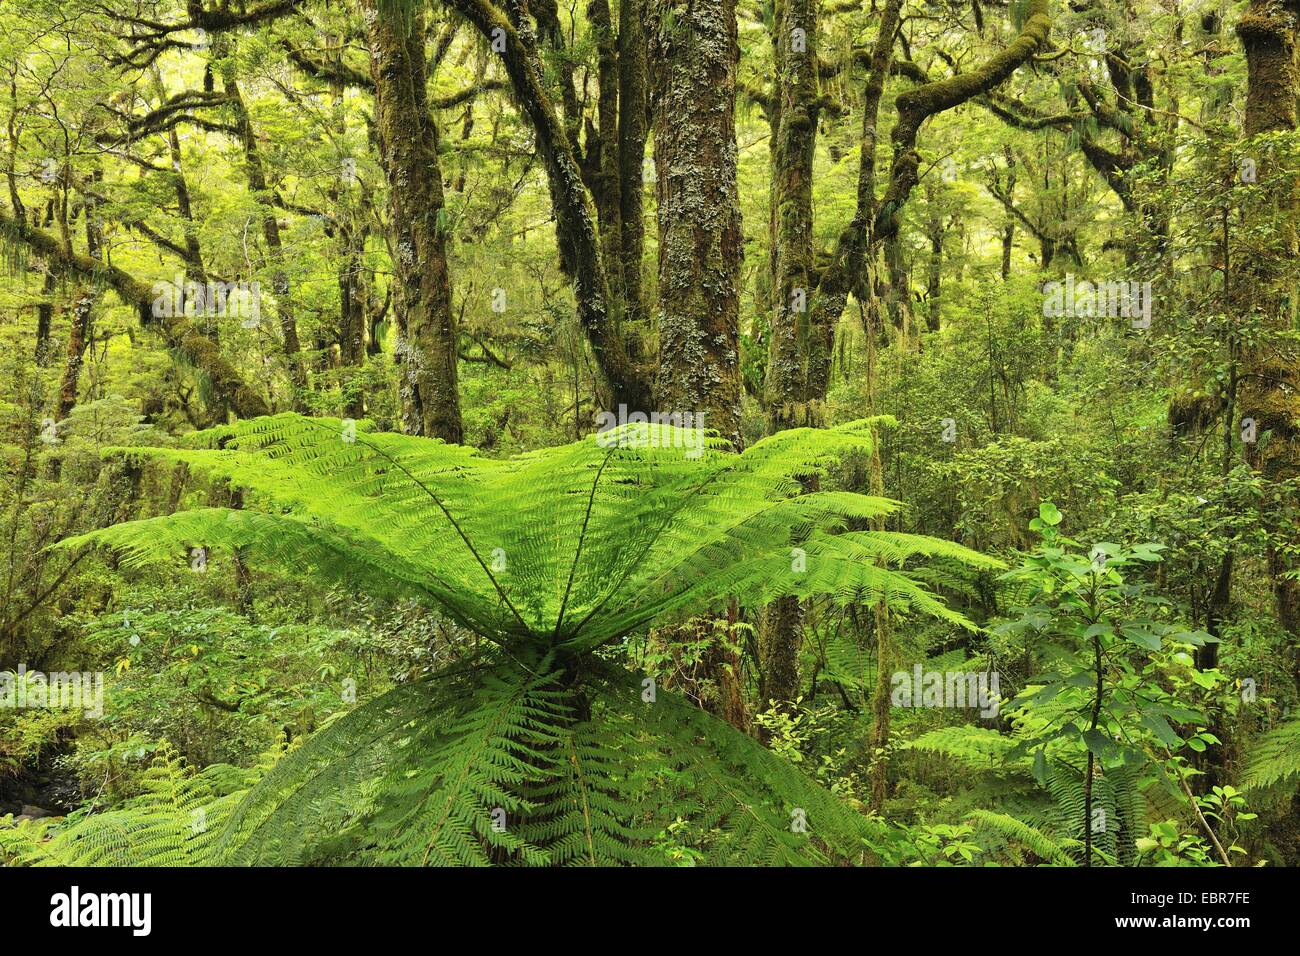 Tree Fern in Temperate Rain Forest, New Zealand, Southern Island, Fjordland National Park, Milford Sound - Stock Image